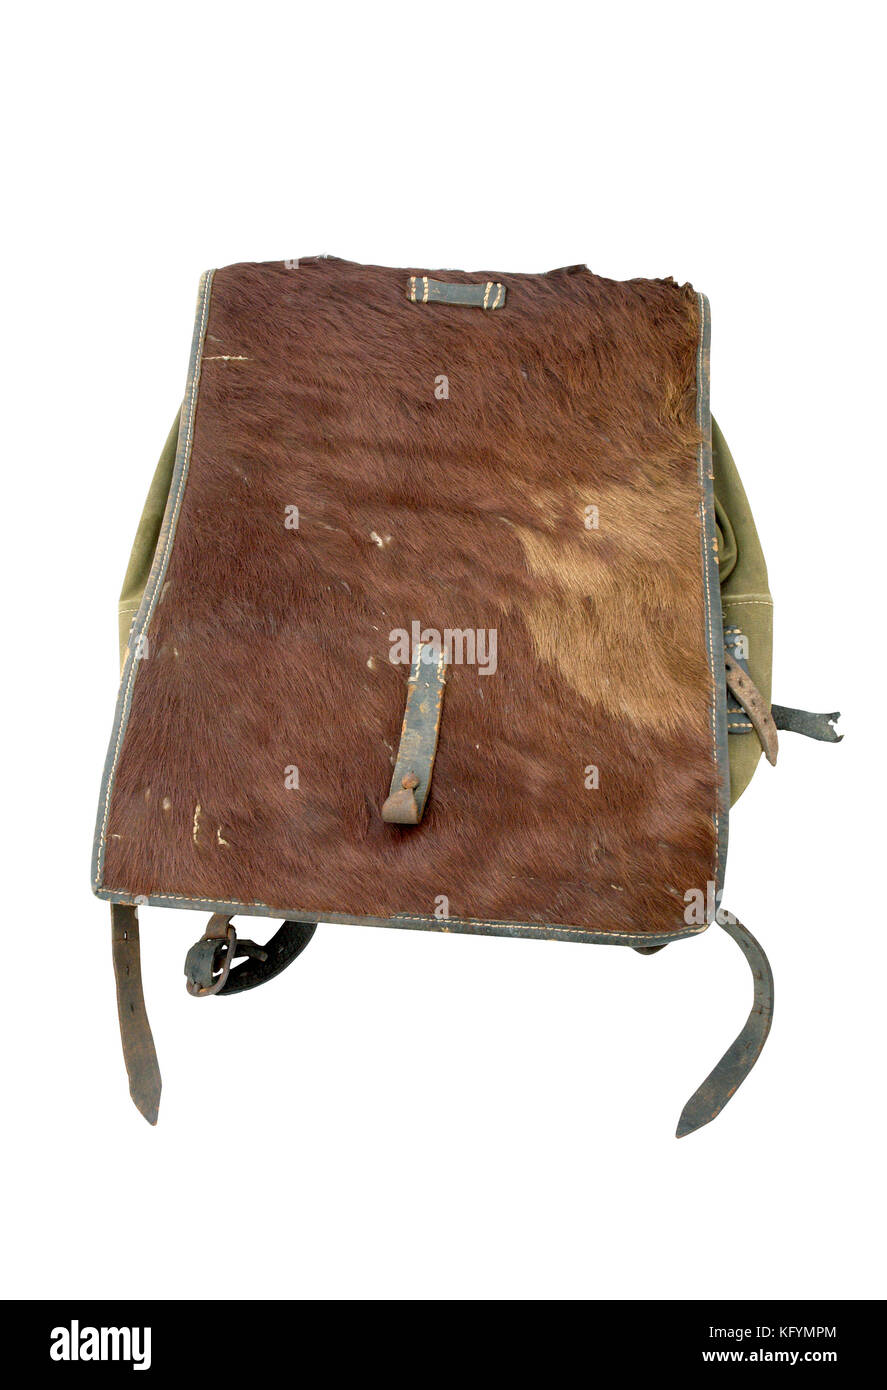 Germany at the WW2 German marching soldier haversack (backpack). - Stock Image